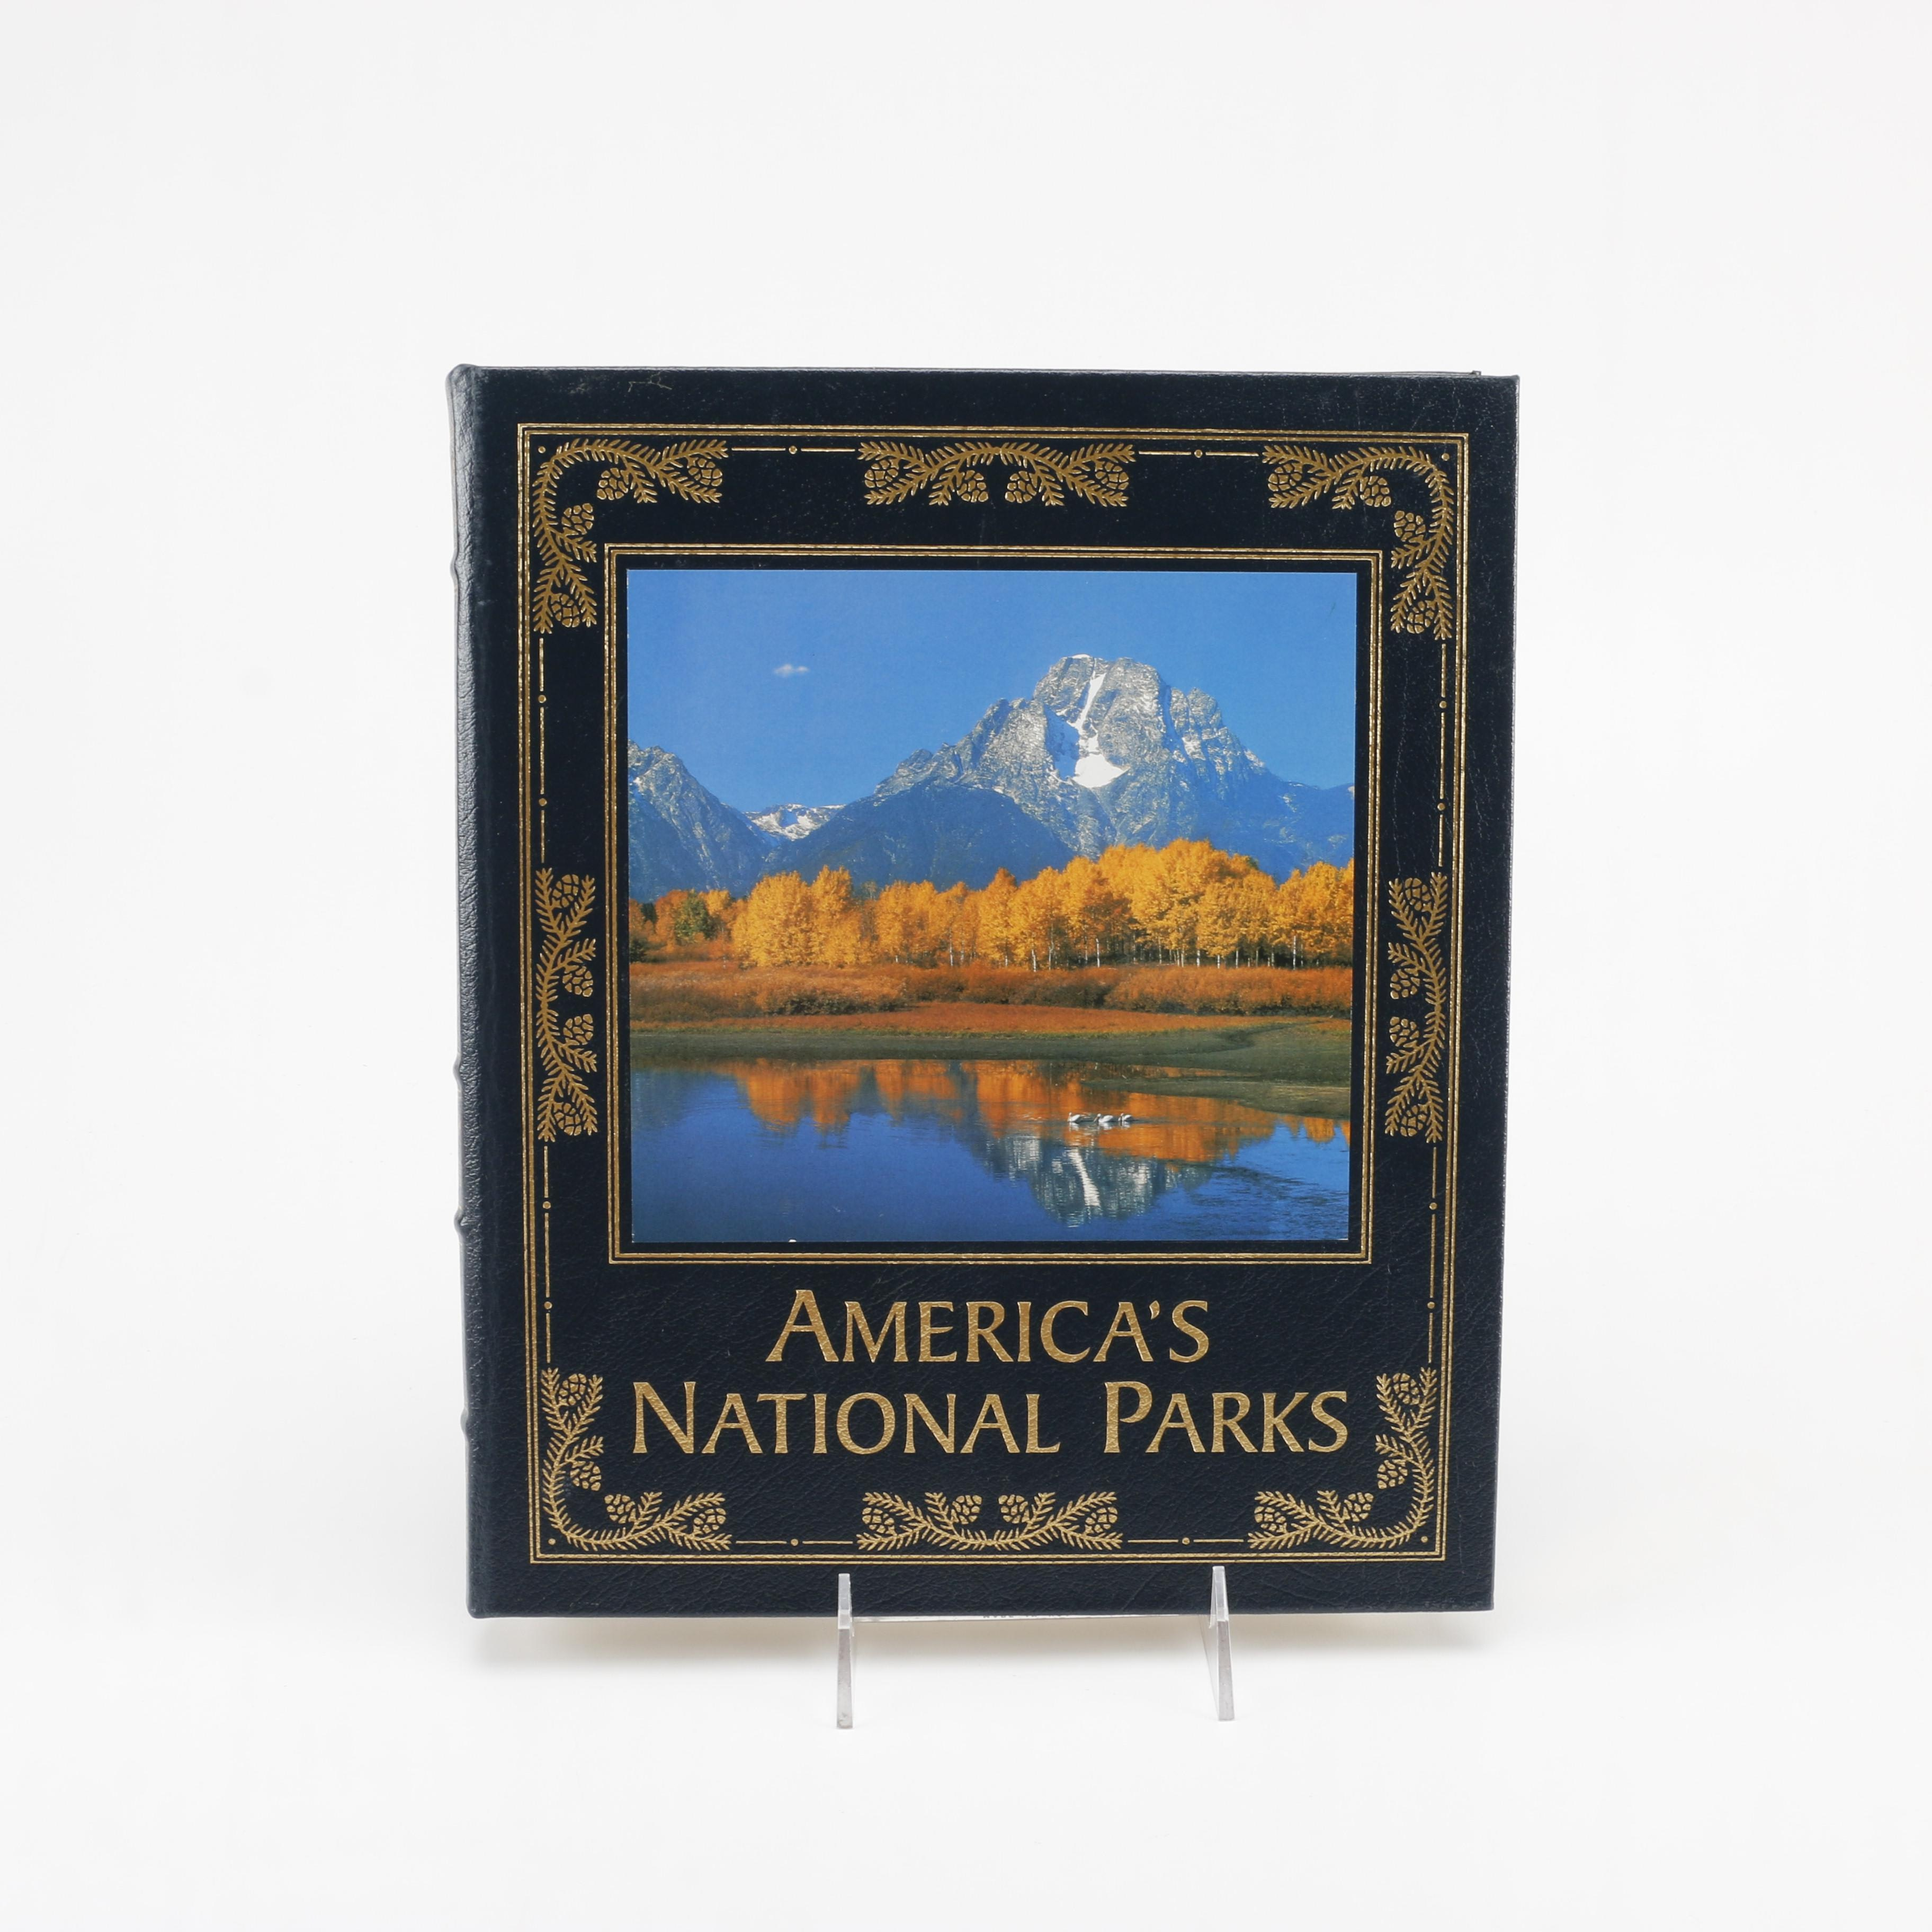 """Easton Press Leatherbound Editions of """"The American Revolution"""" and """"America's National Parks"""""""